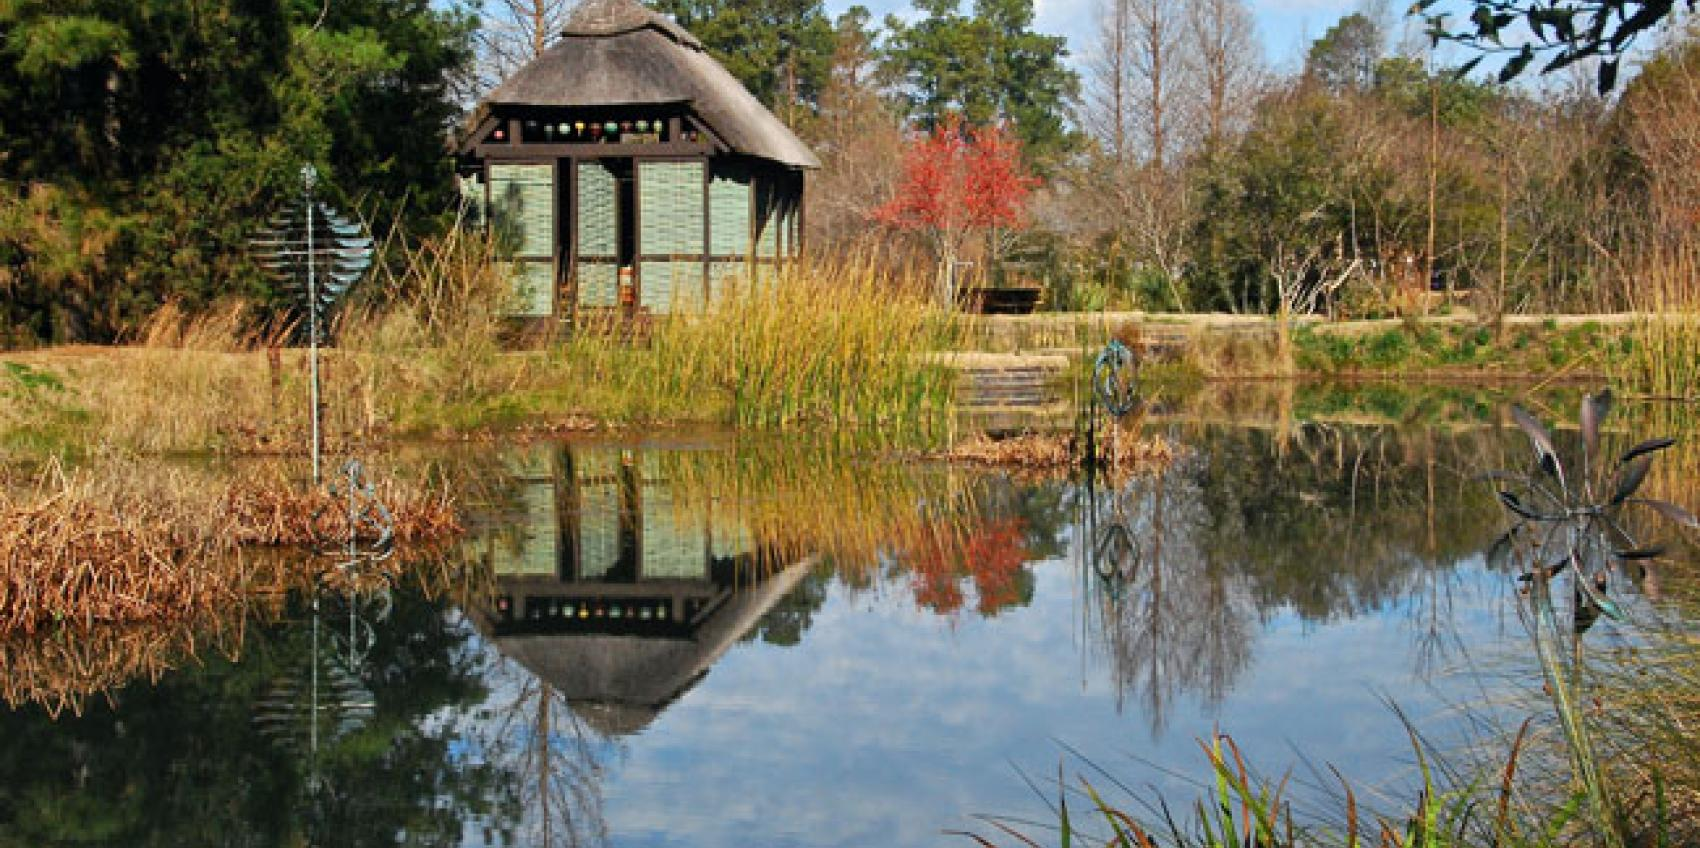 Superieur Nestled Among Fields Of Corn And Soybeans, This Dynamic 50 Acre Garden Is  Set In The Rural Pee Dee Region Near Lake City, South Carolina.